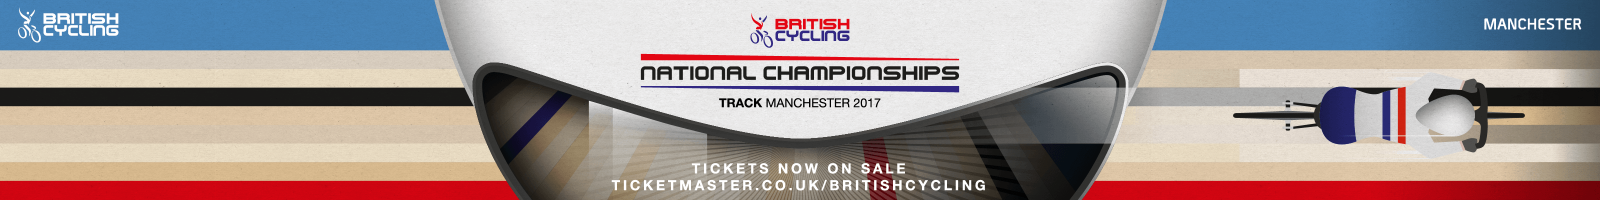 National Track Championships 2017 member ticket sales